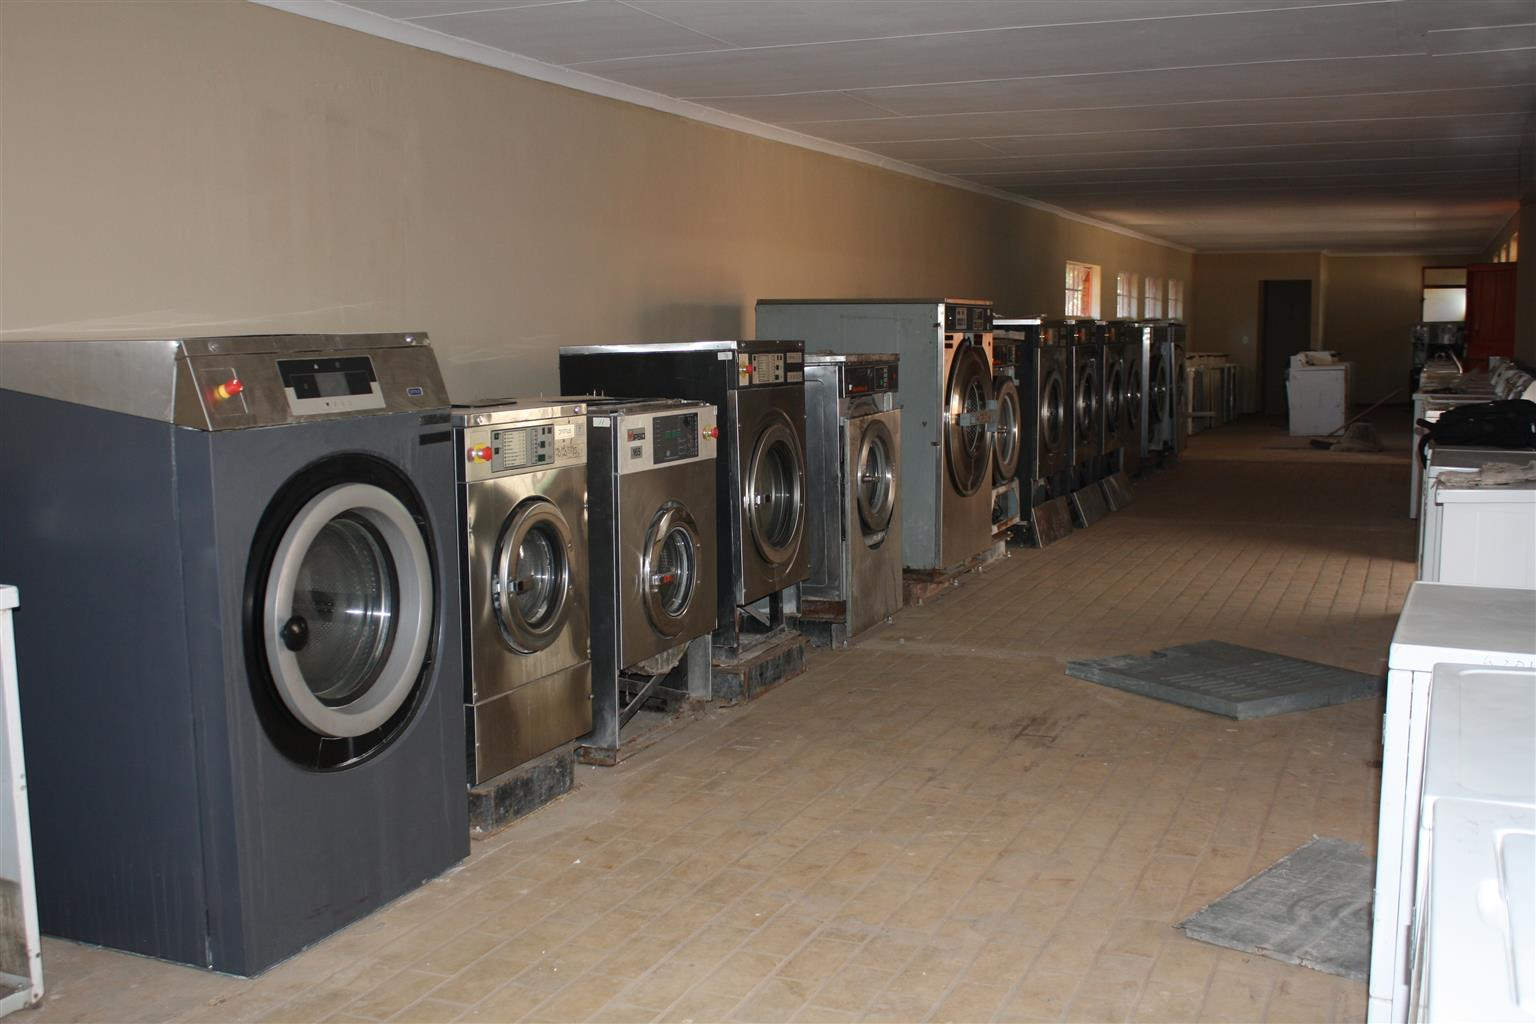 Commercial washing machine's, tumble dryer's, roller iron for sale